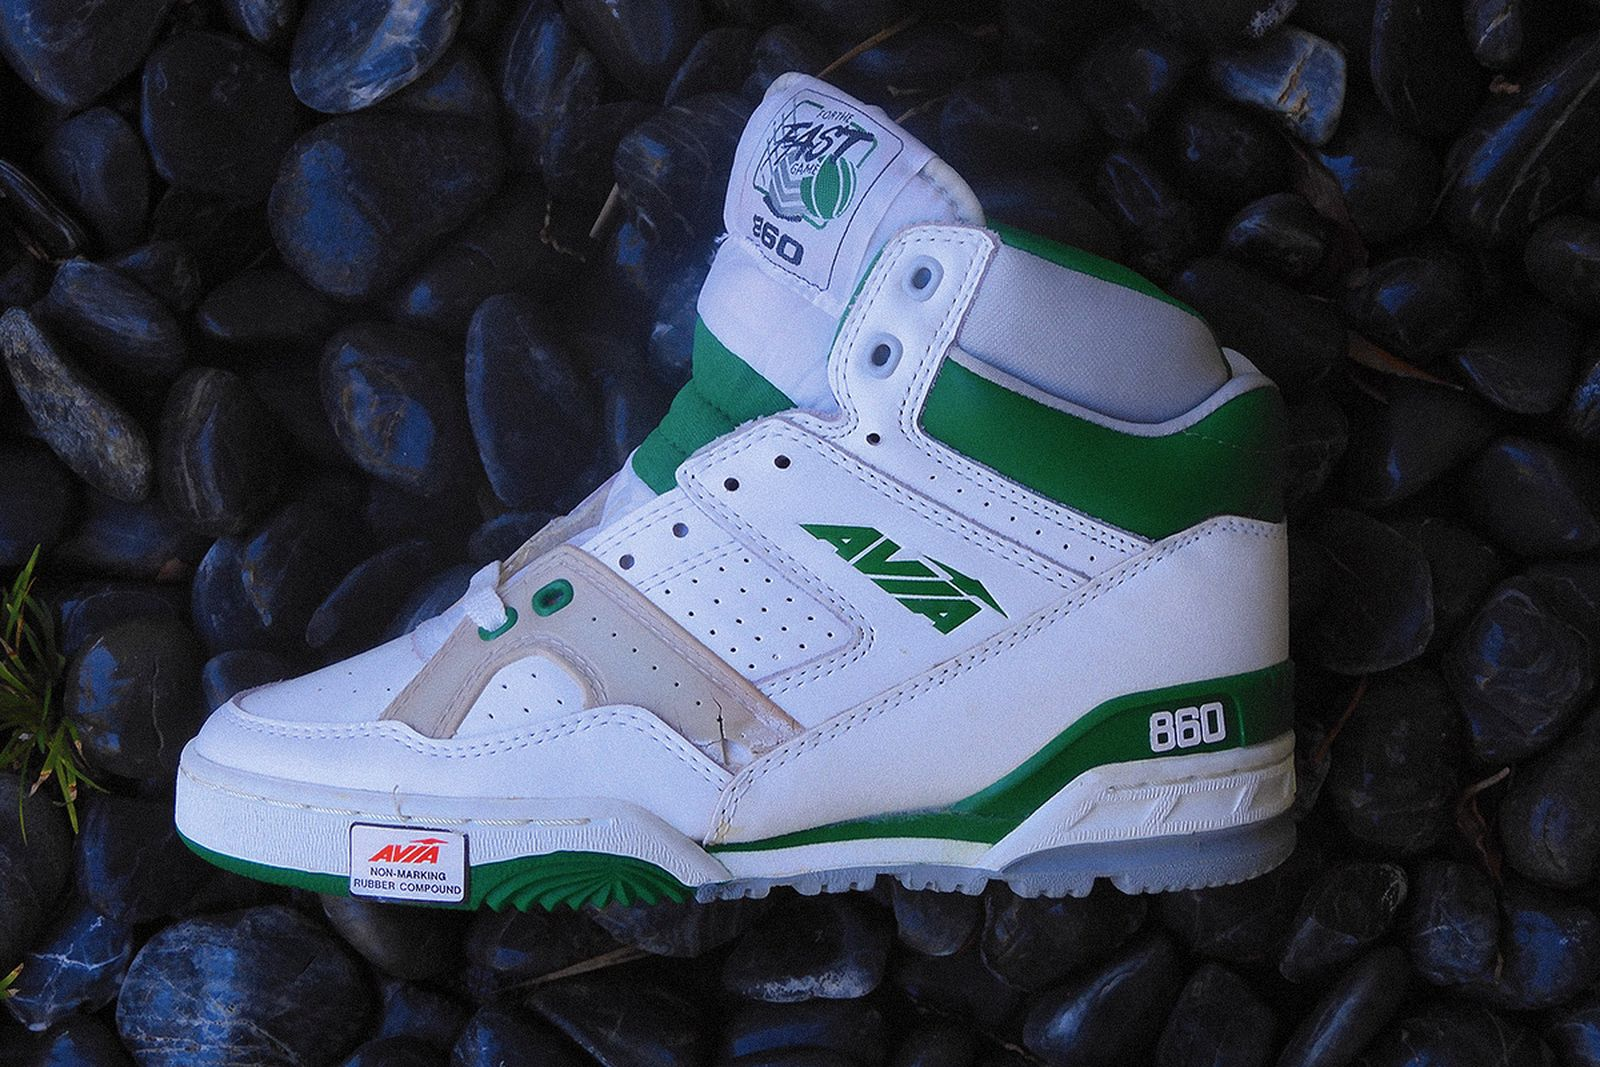 obscure sneakers interview New Balance Obscuresneakers Saucony